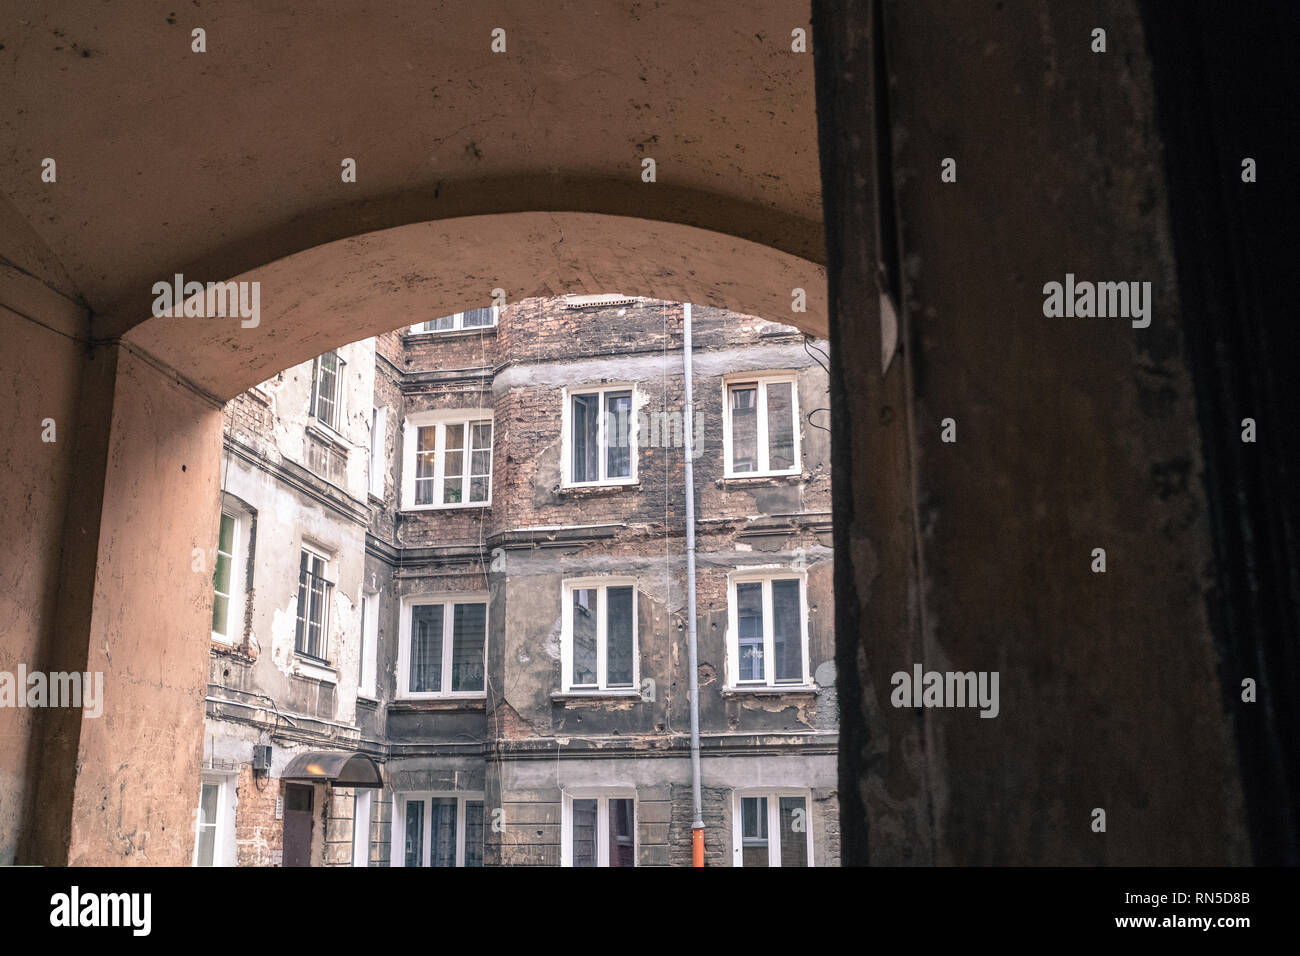 Tenement House in Warsaw seen through an archway into the courtyard Stock Photo